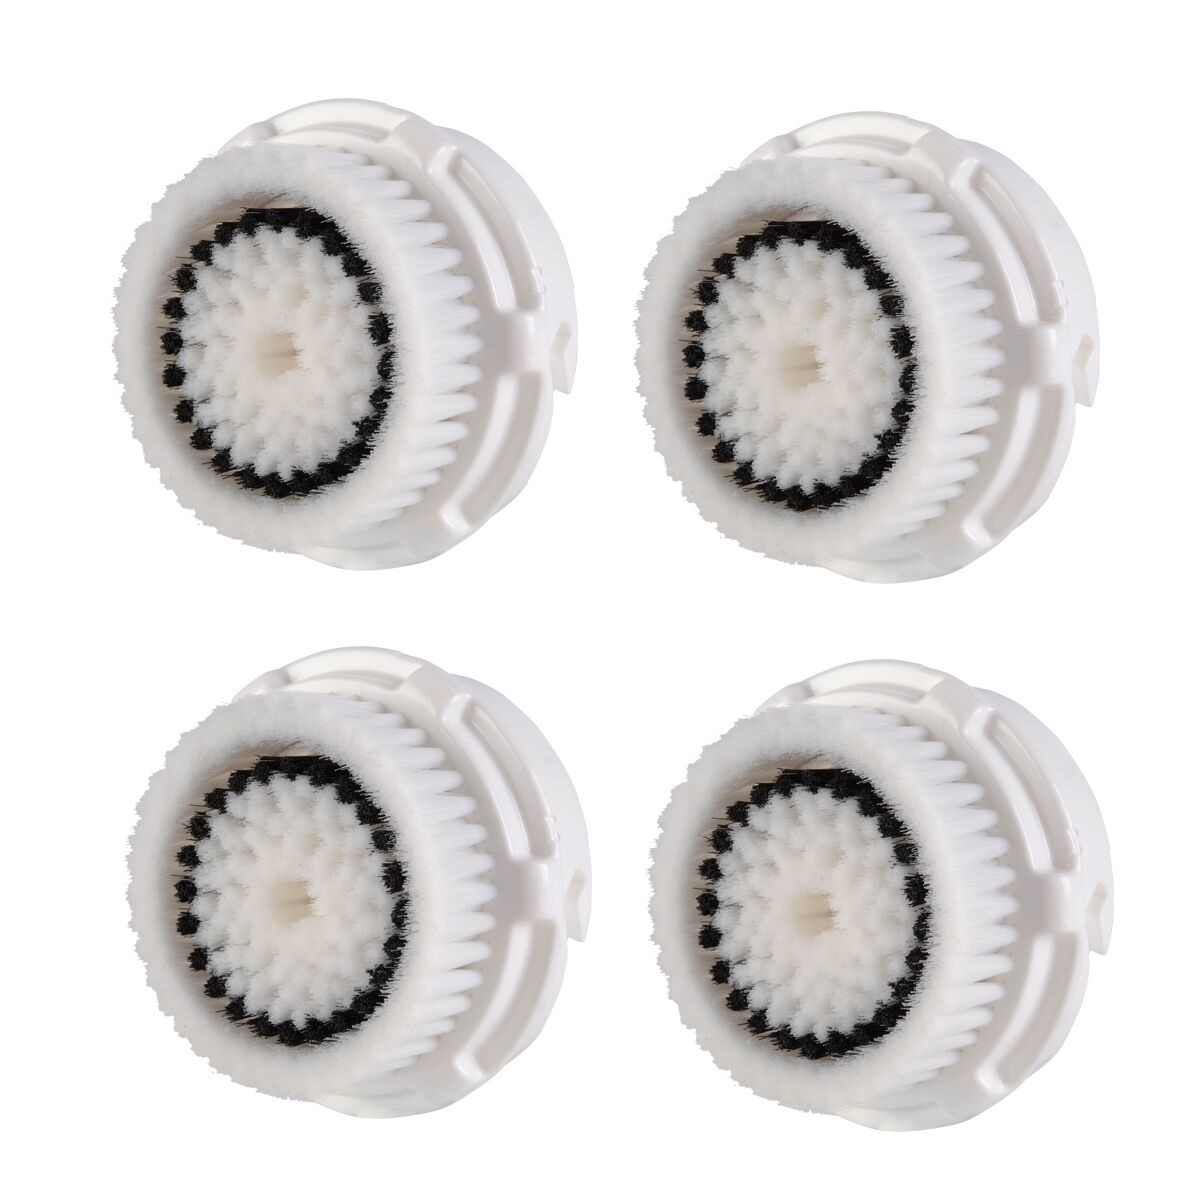 PURSONIC FBHD4 DELICATE 4PK REPLACEMENT HEADS FOR CLARISONIC